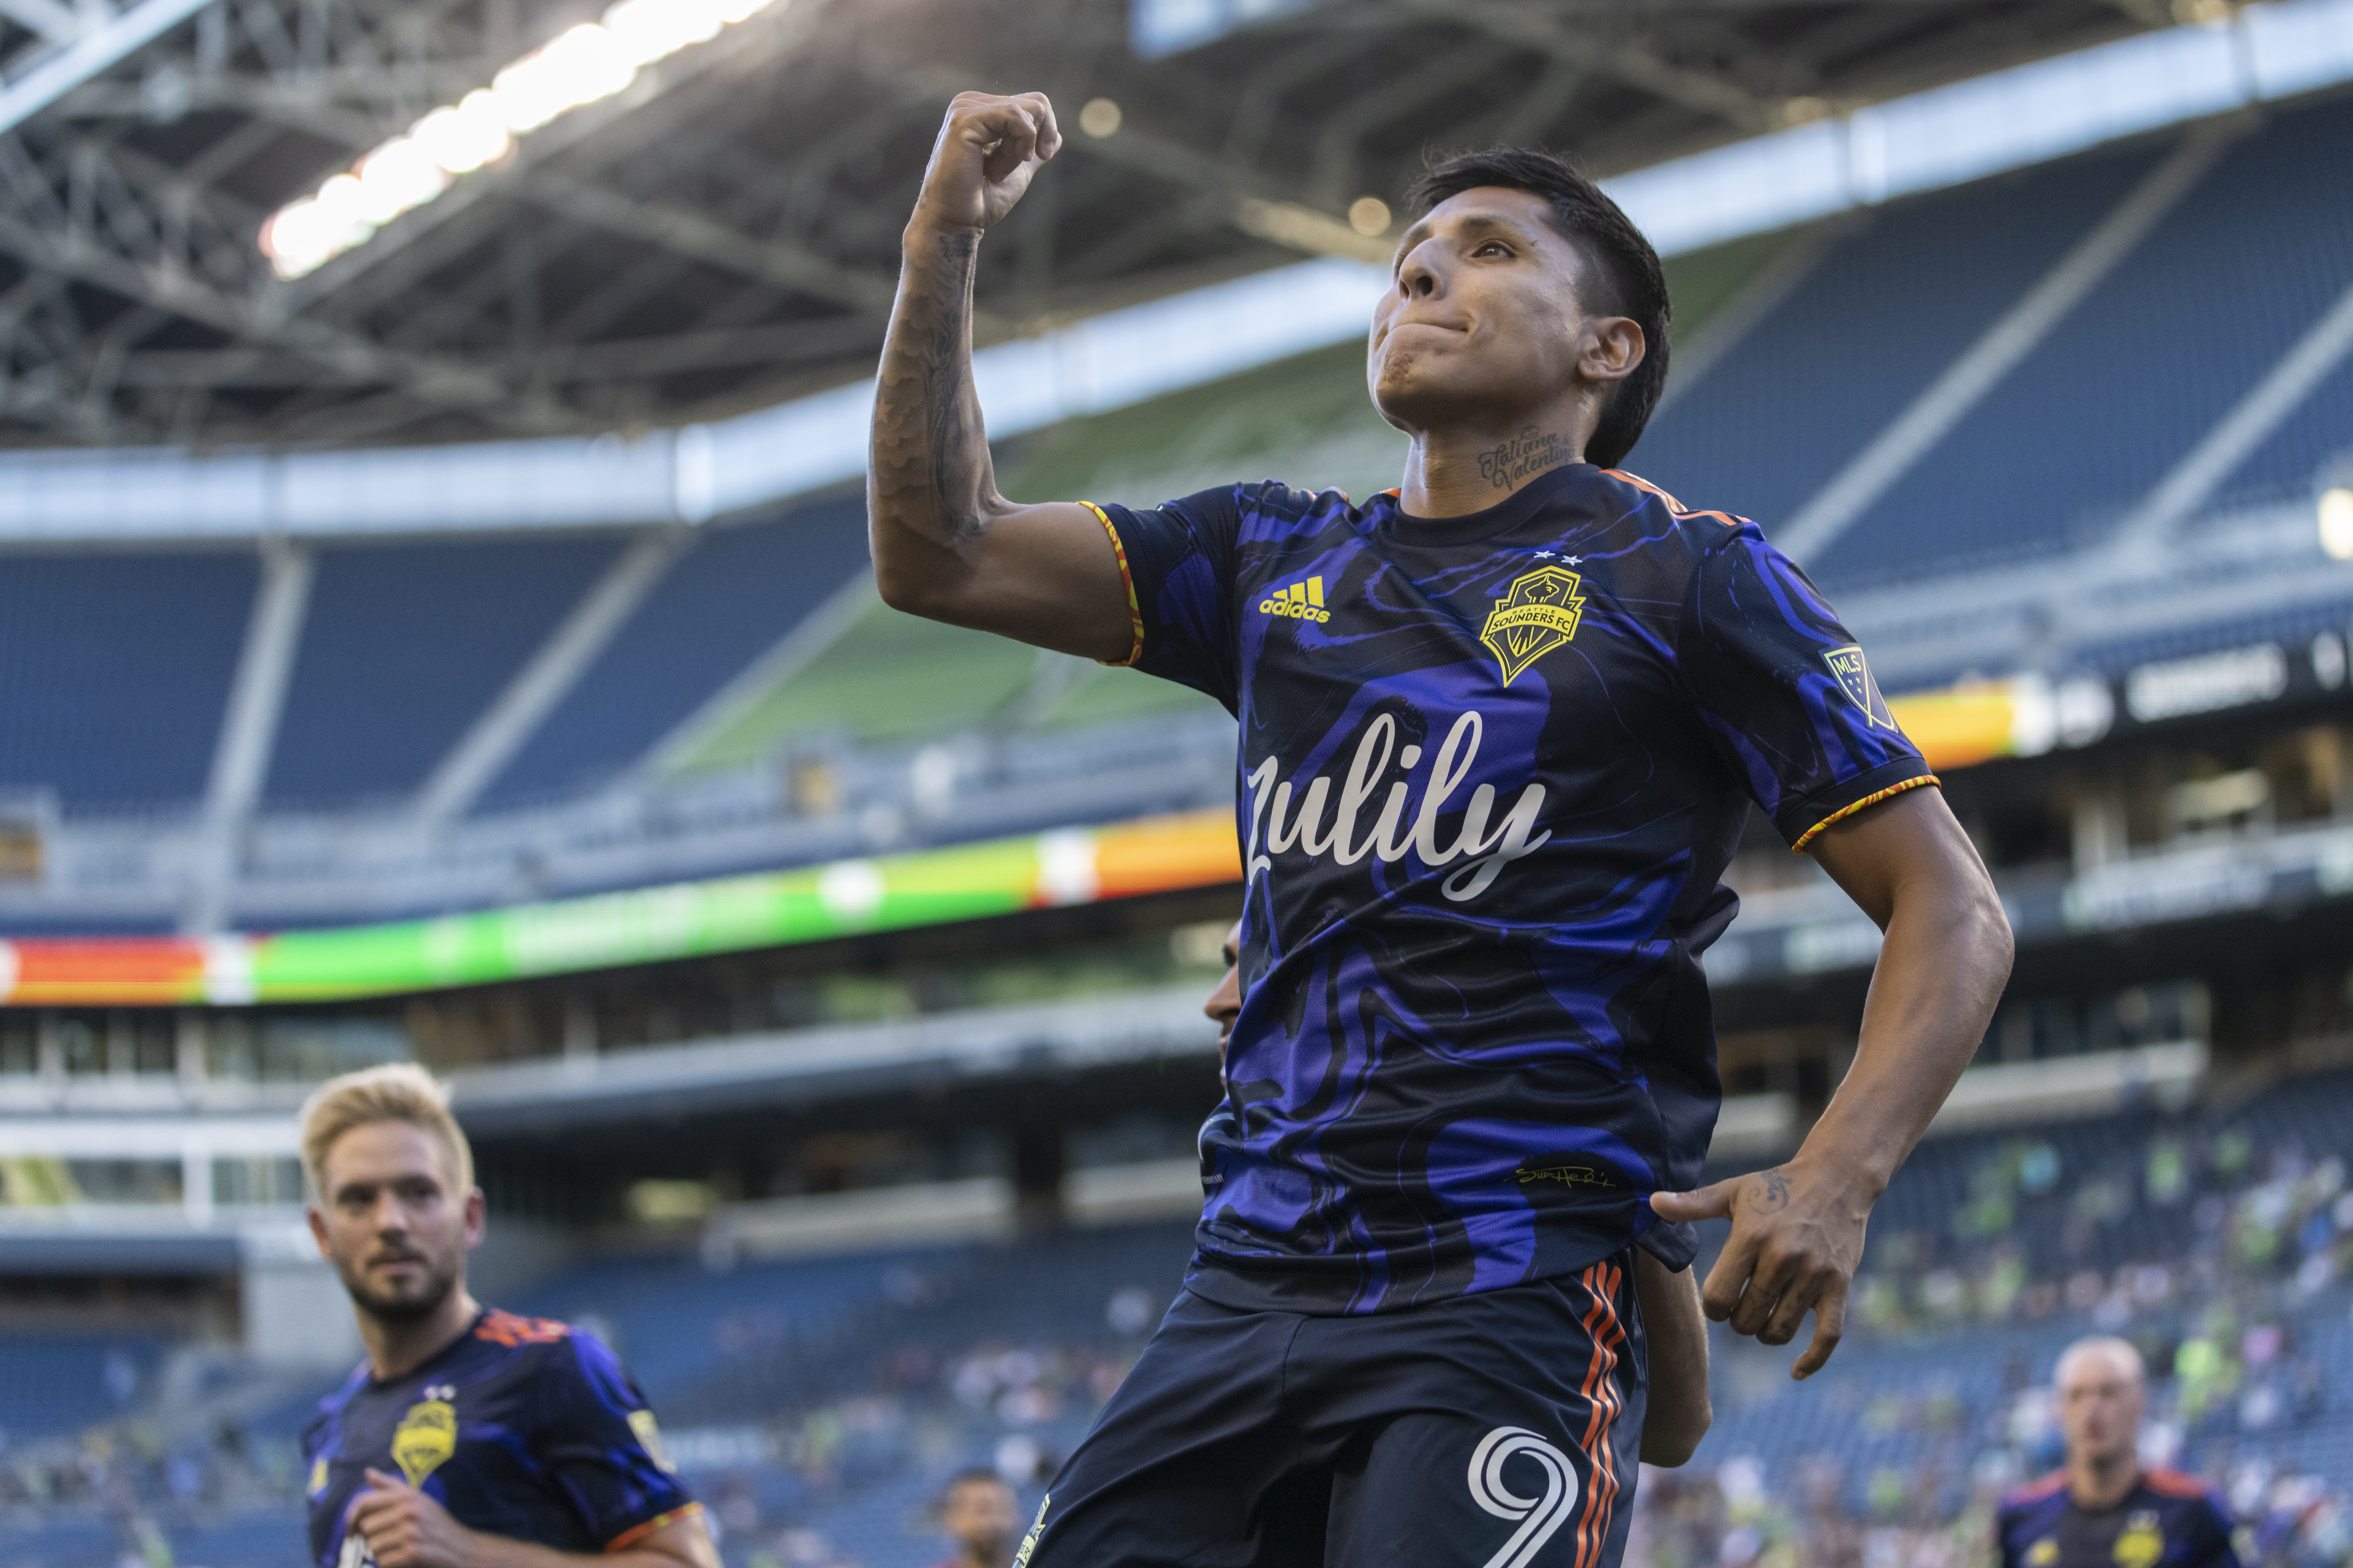 Raul Ruidiaz #9 of Seattle Sounders FC celebrates after scoring a goal on a penalty kick during the first half of a match against Tigres UANL at Lumen Field on August 10, 2021 in Seattle, Washington.